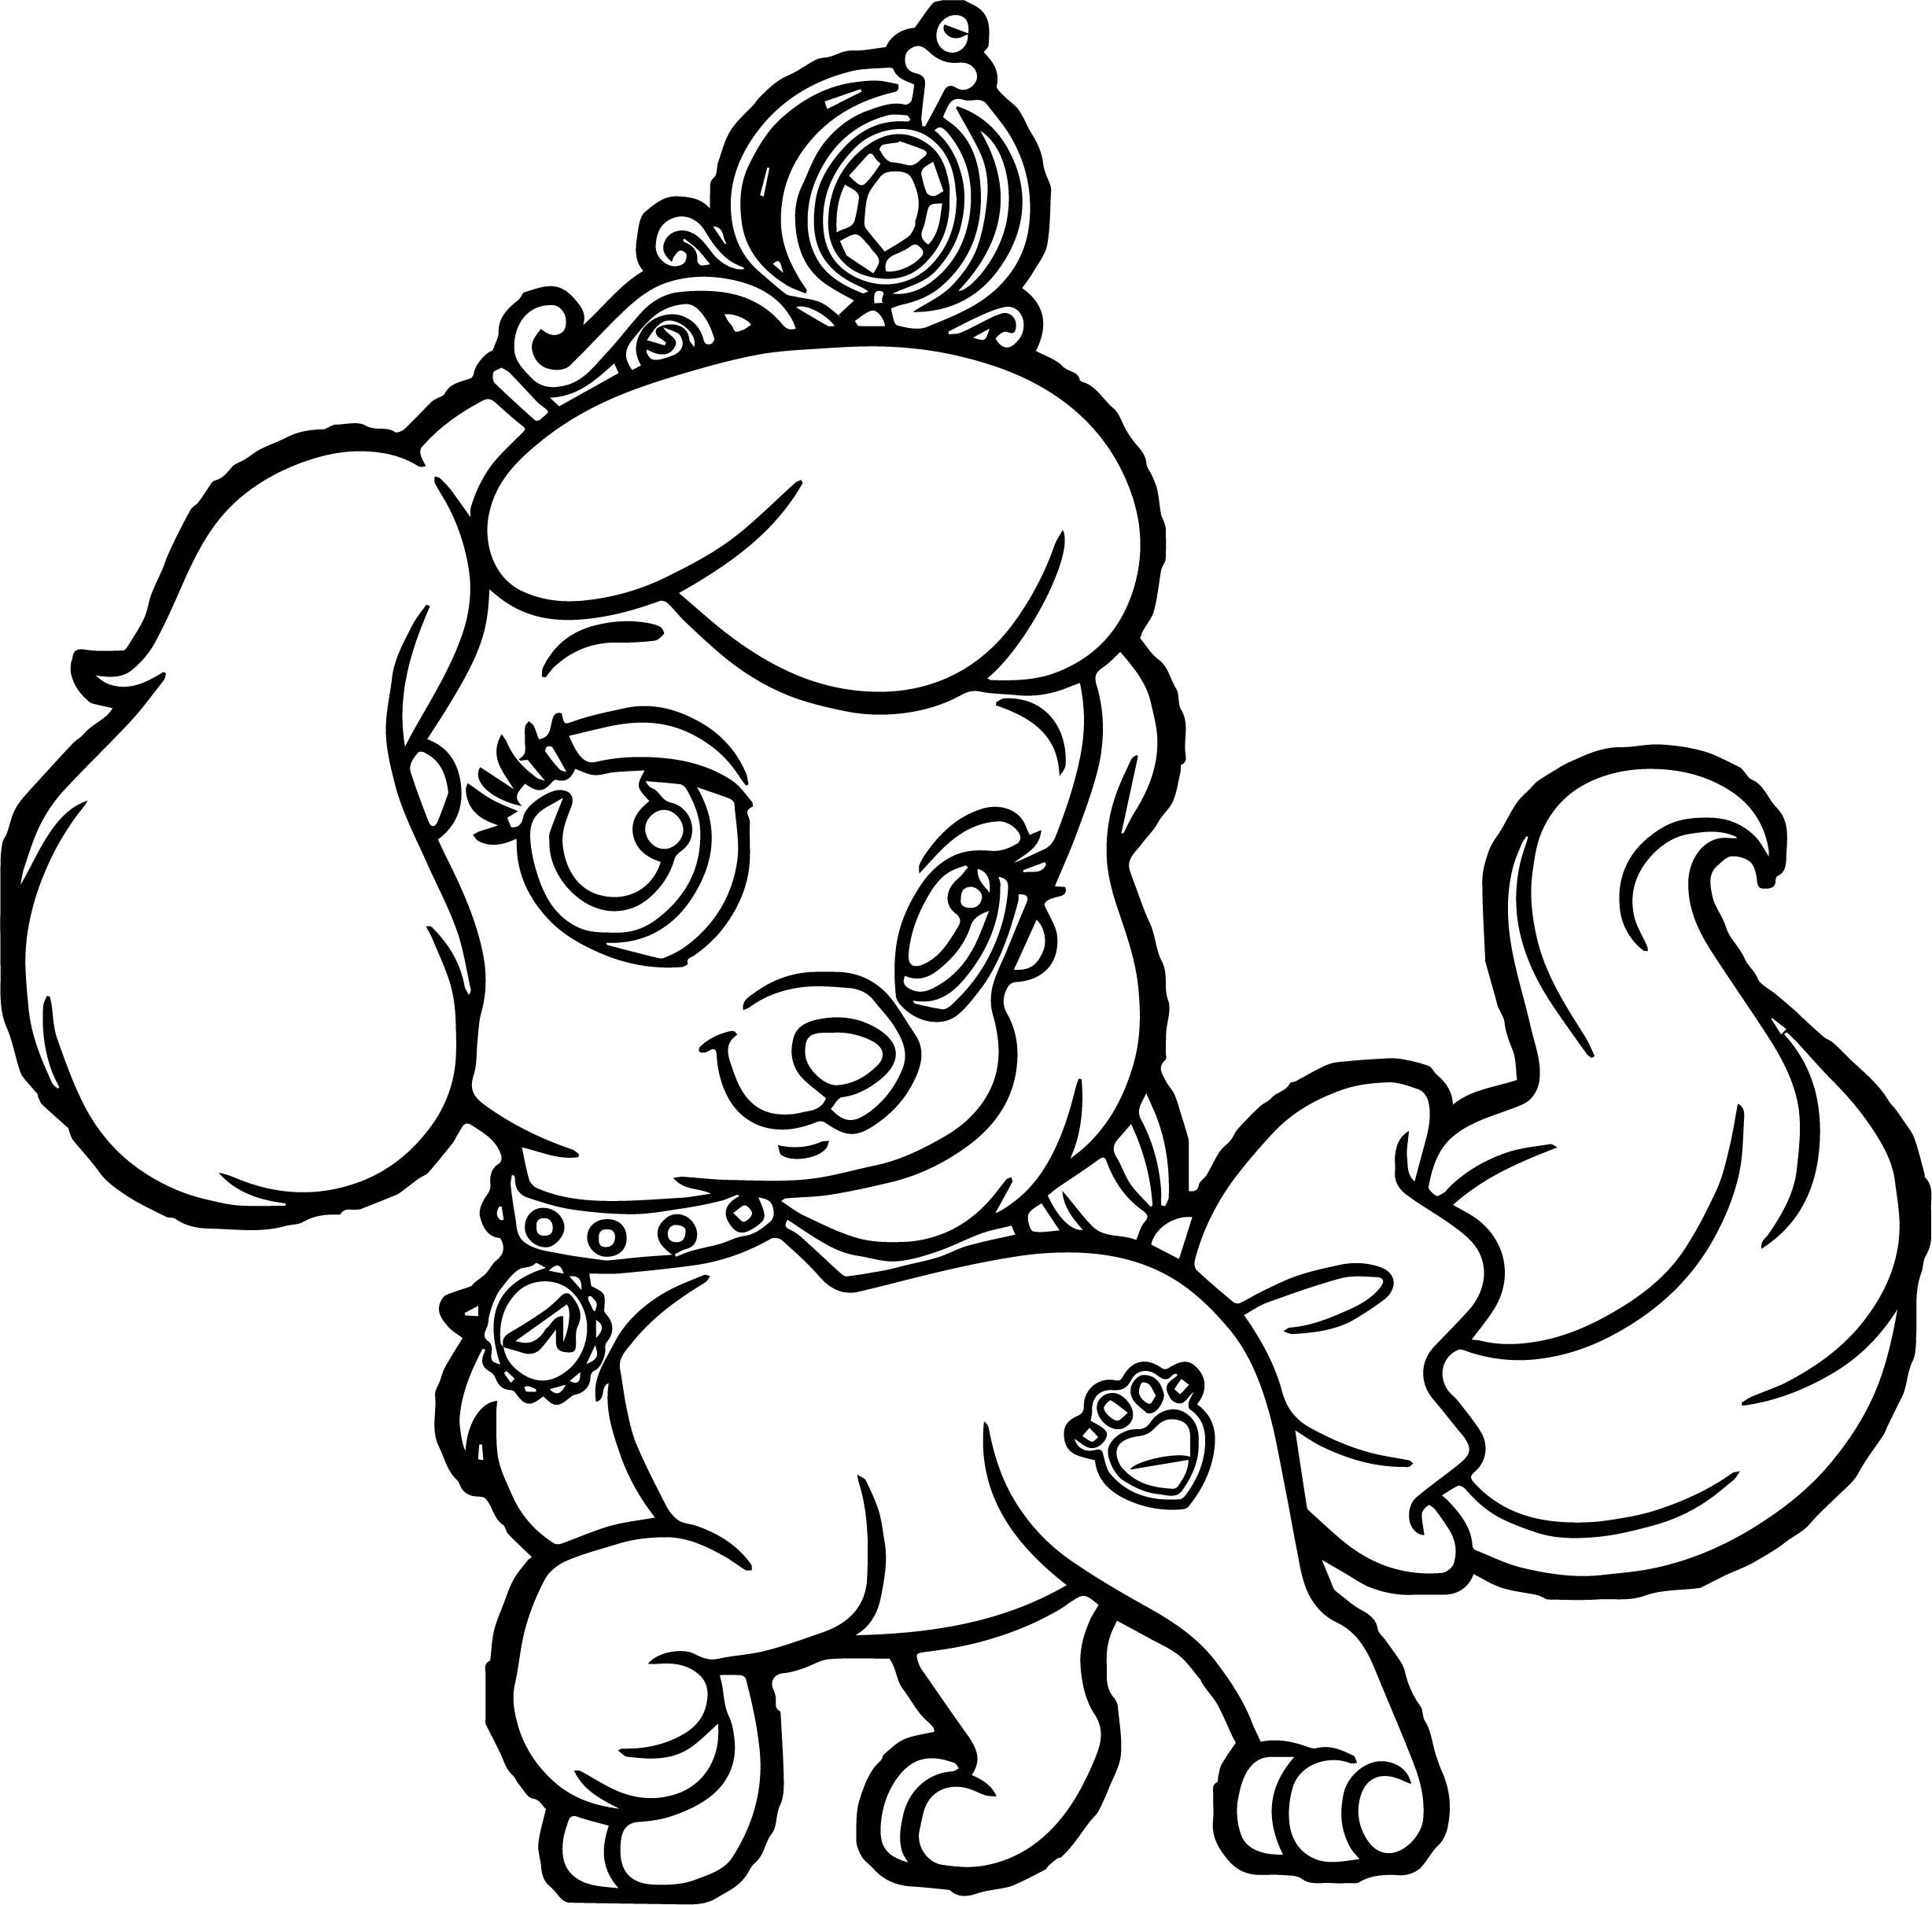 puppy pictures for coloring animals coloring pages cute puppy playing kids puppy coloring pictures for